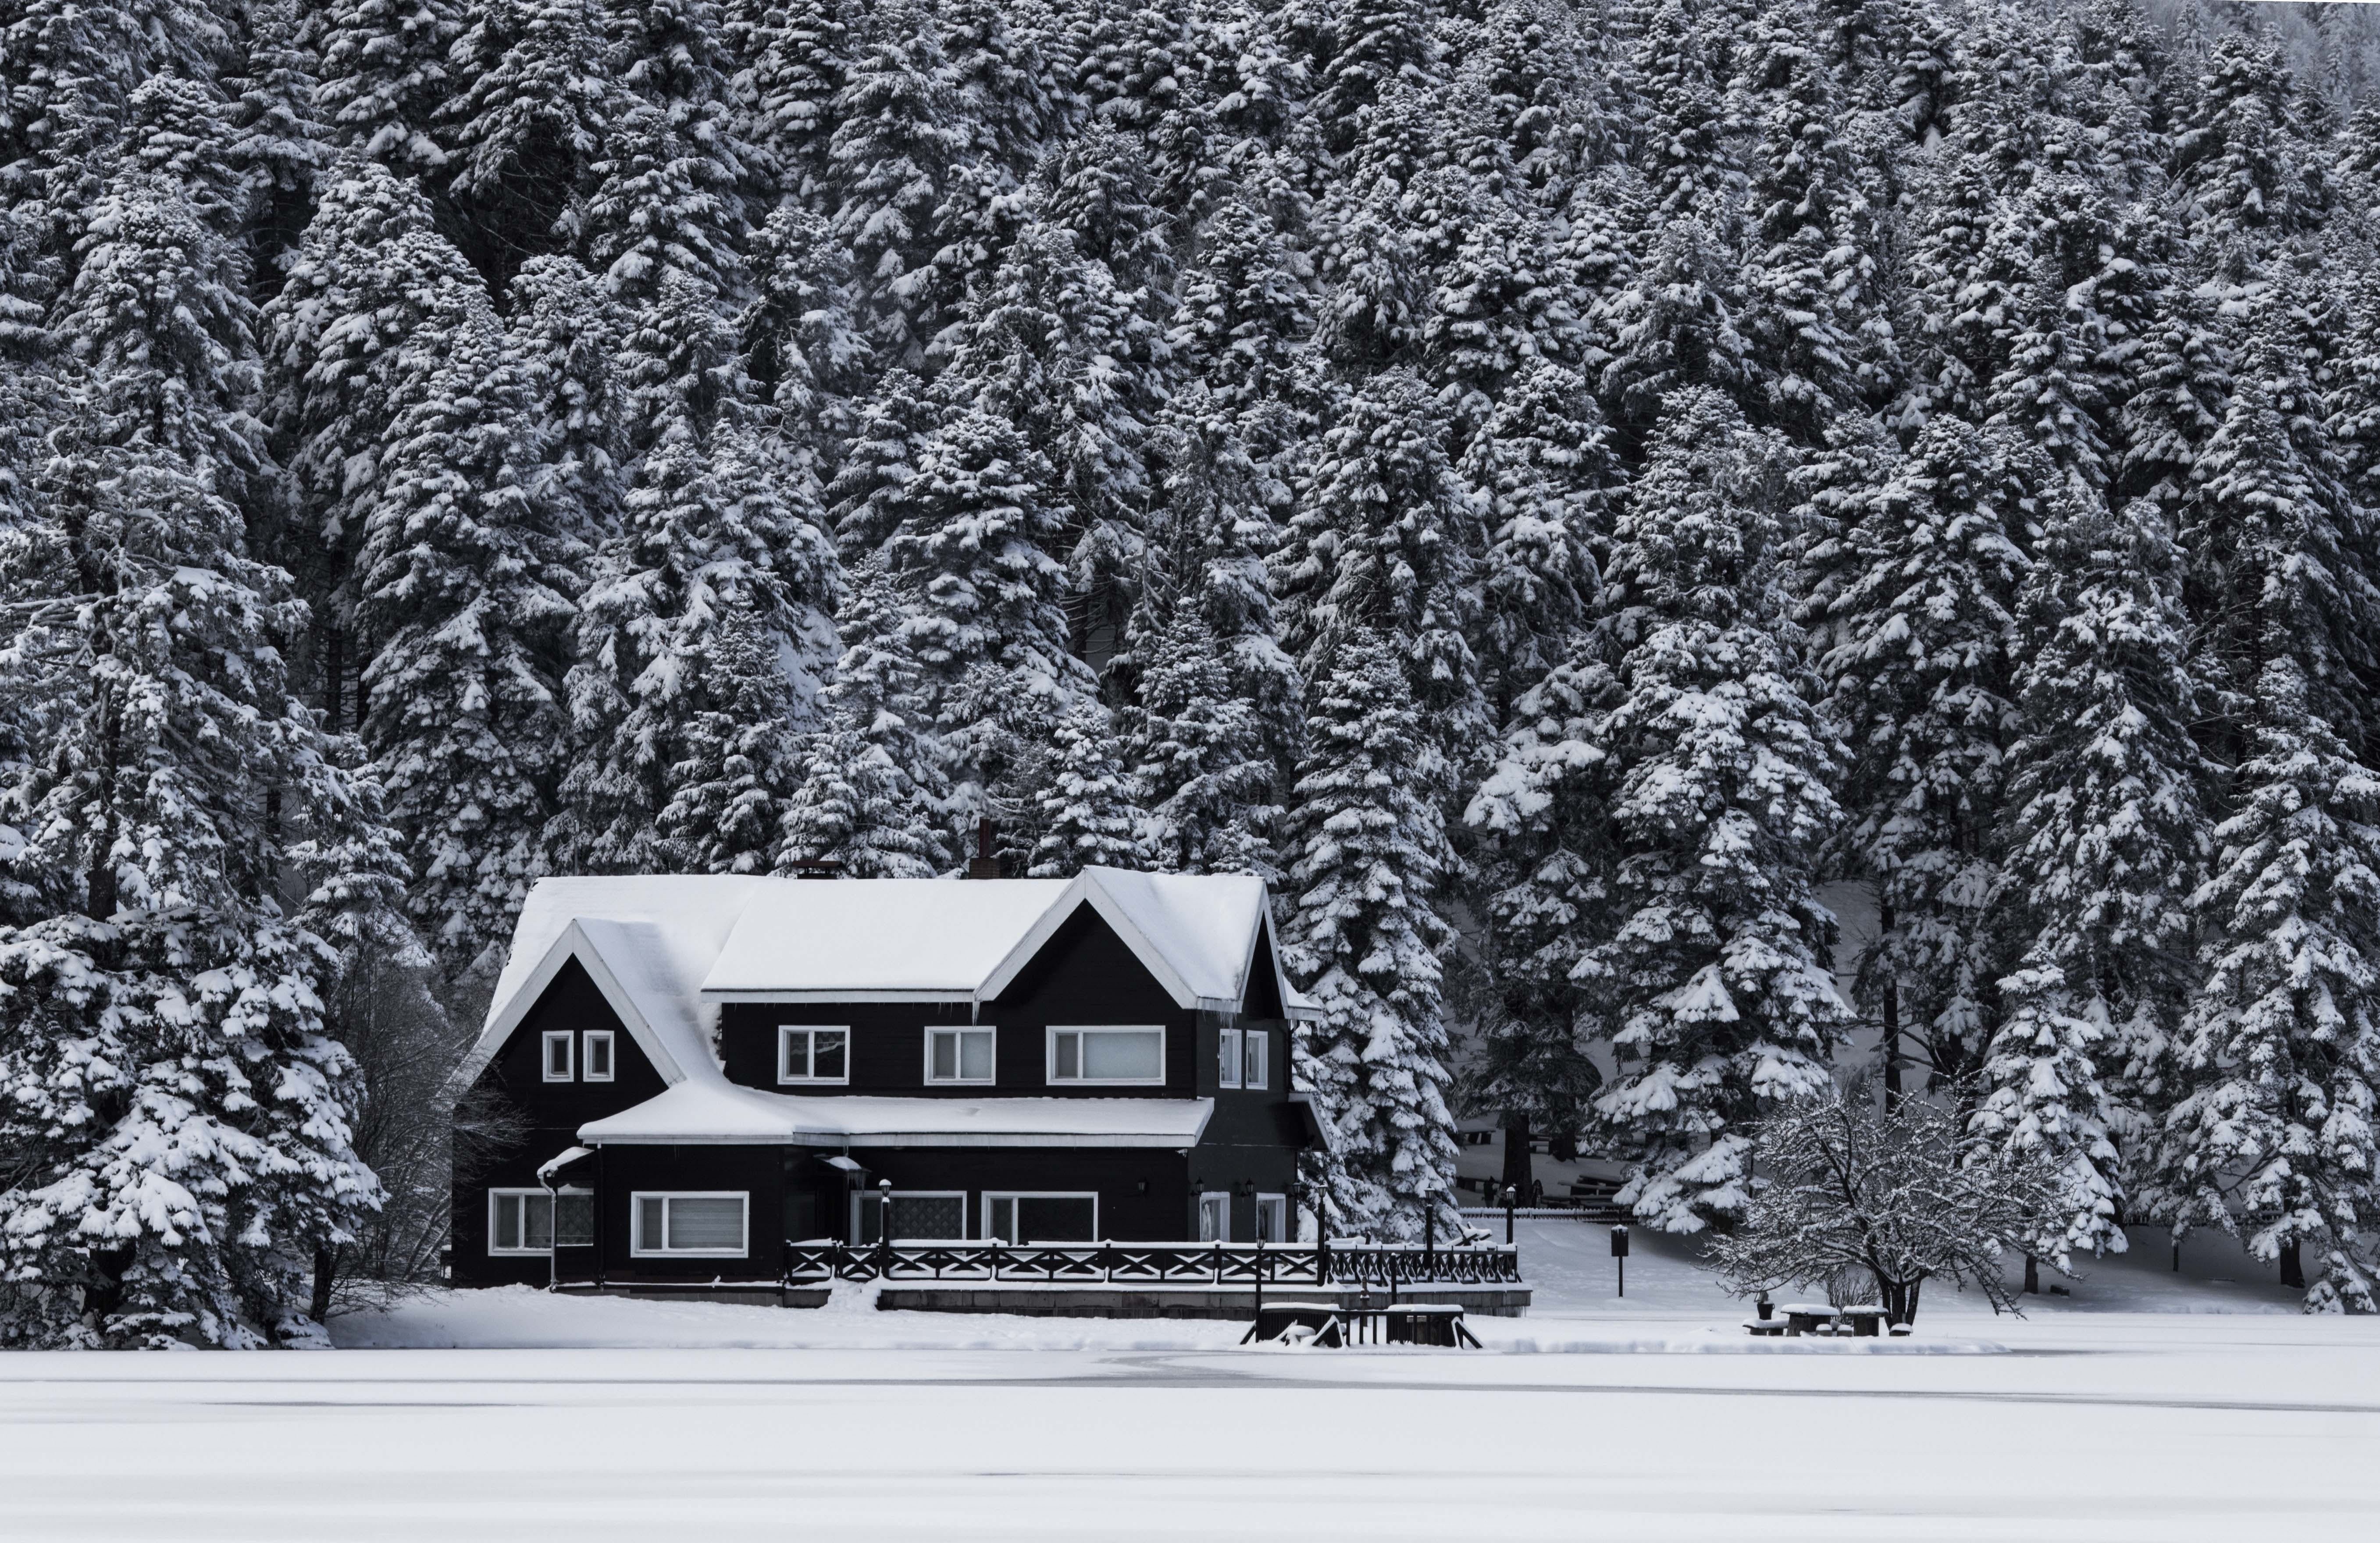 Snowy House Grayscale Photo